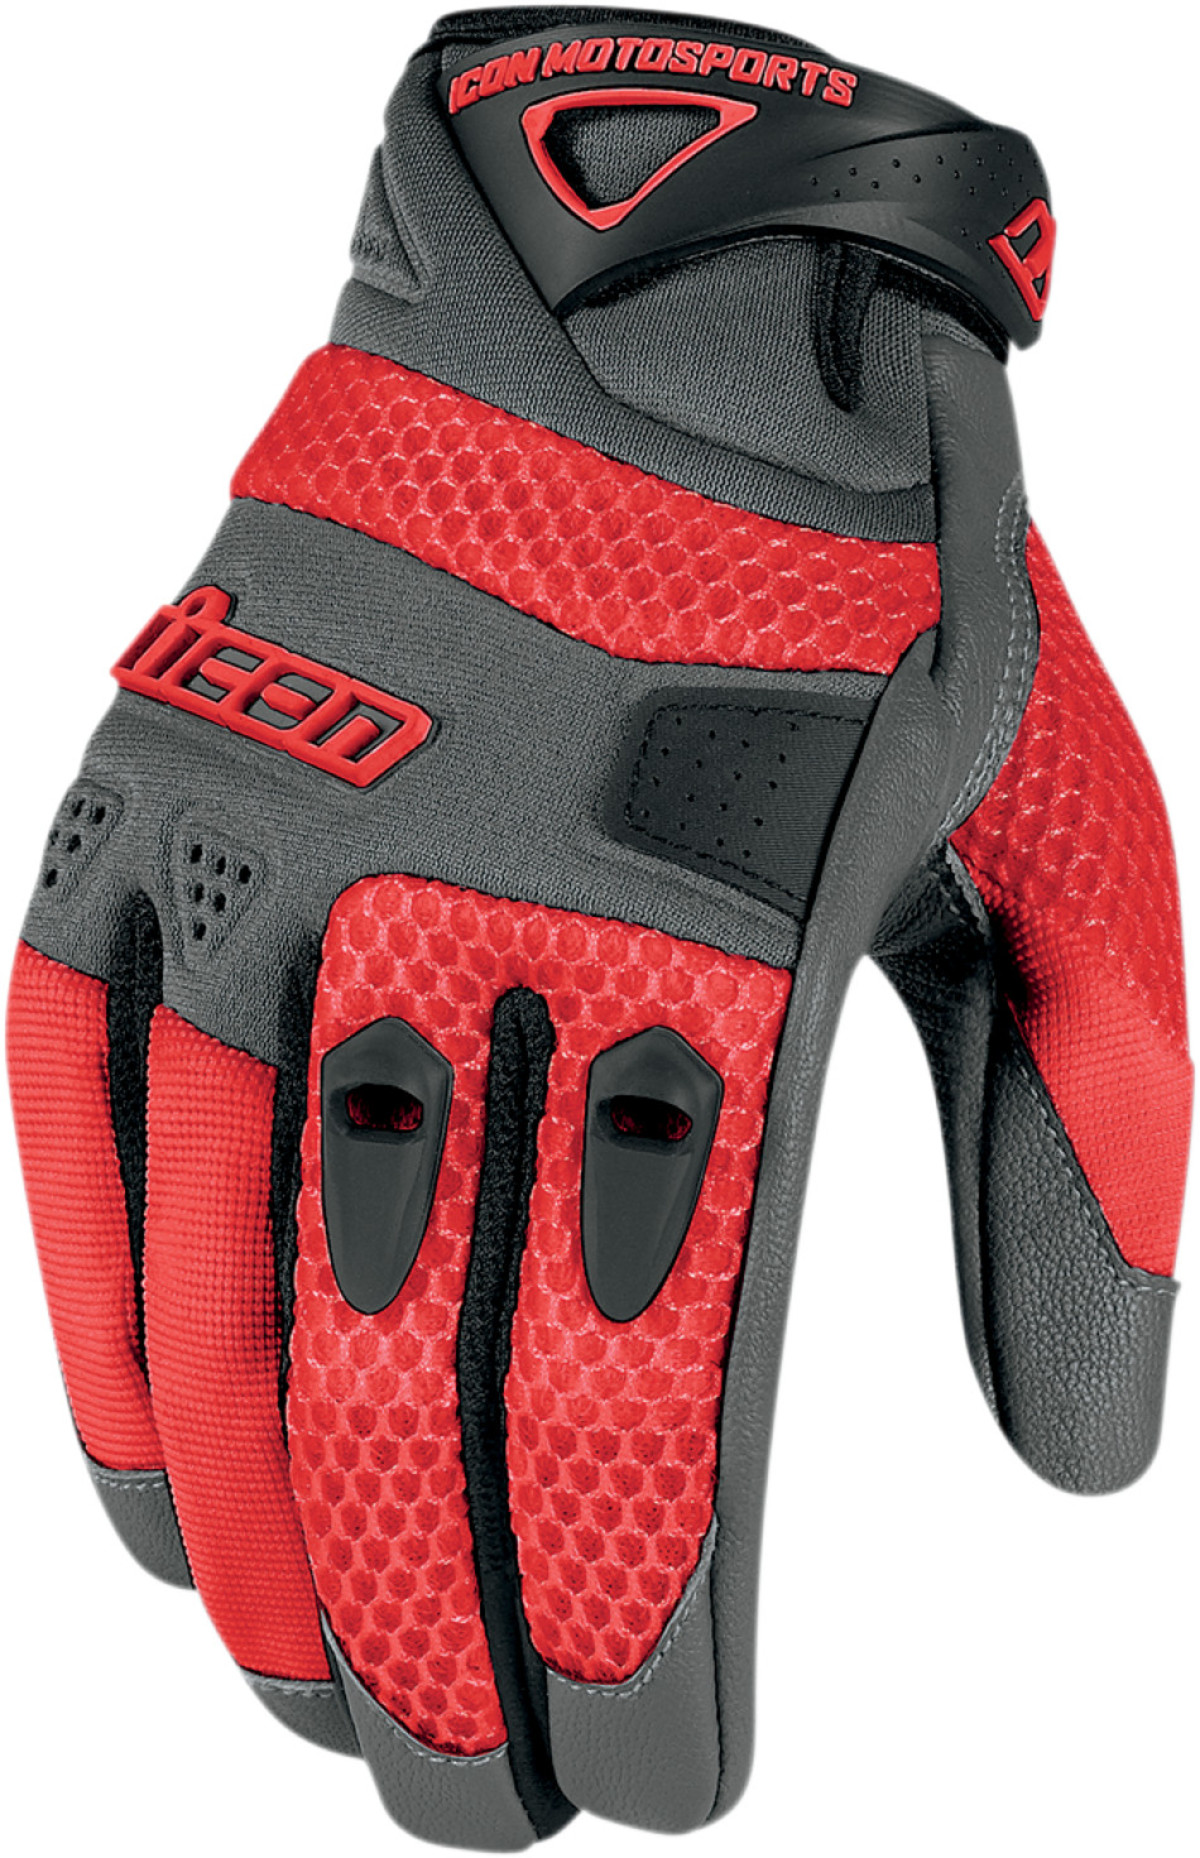 Motorcycle gloves for summer - Postage And Payments